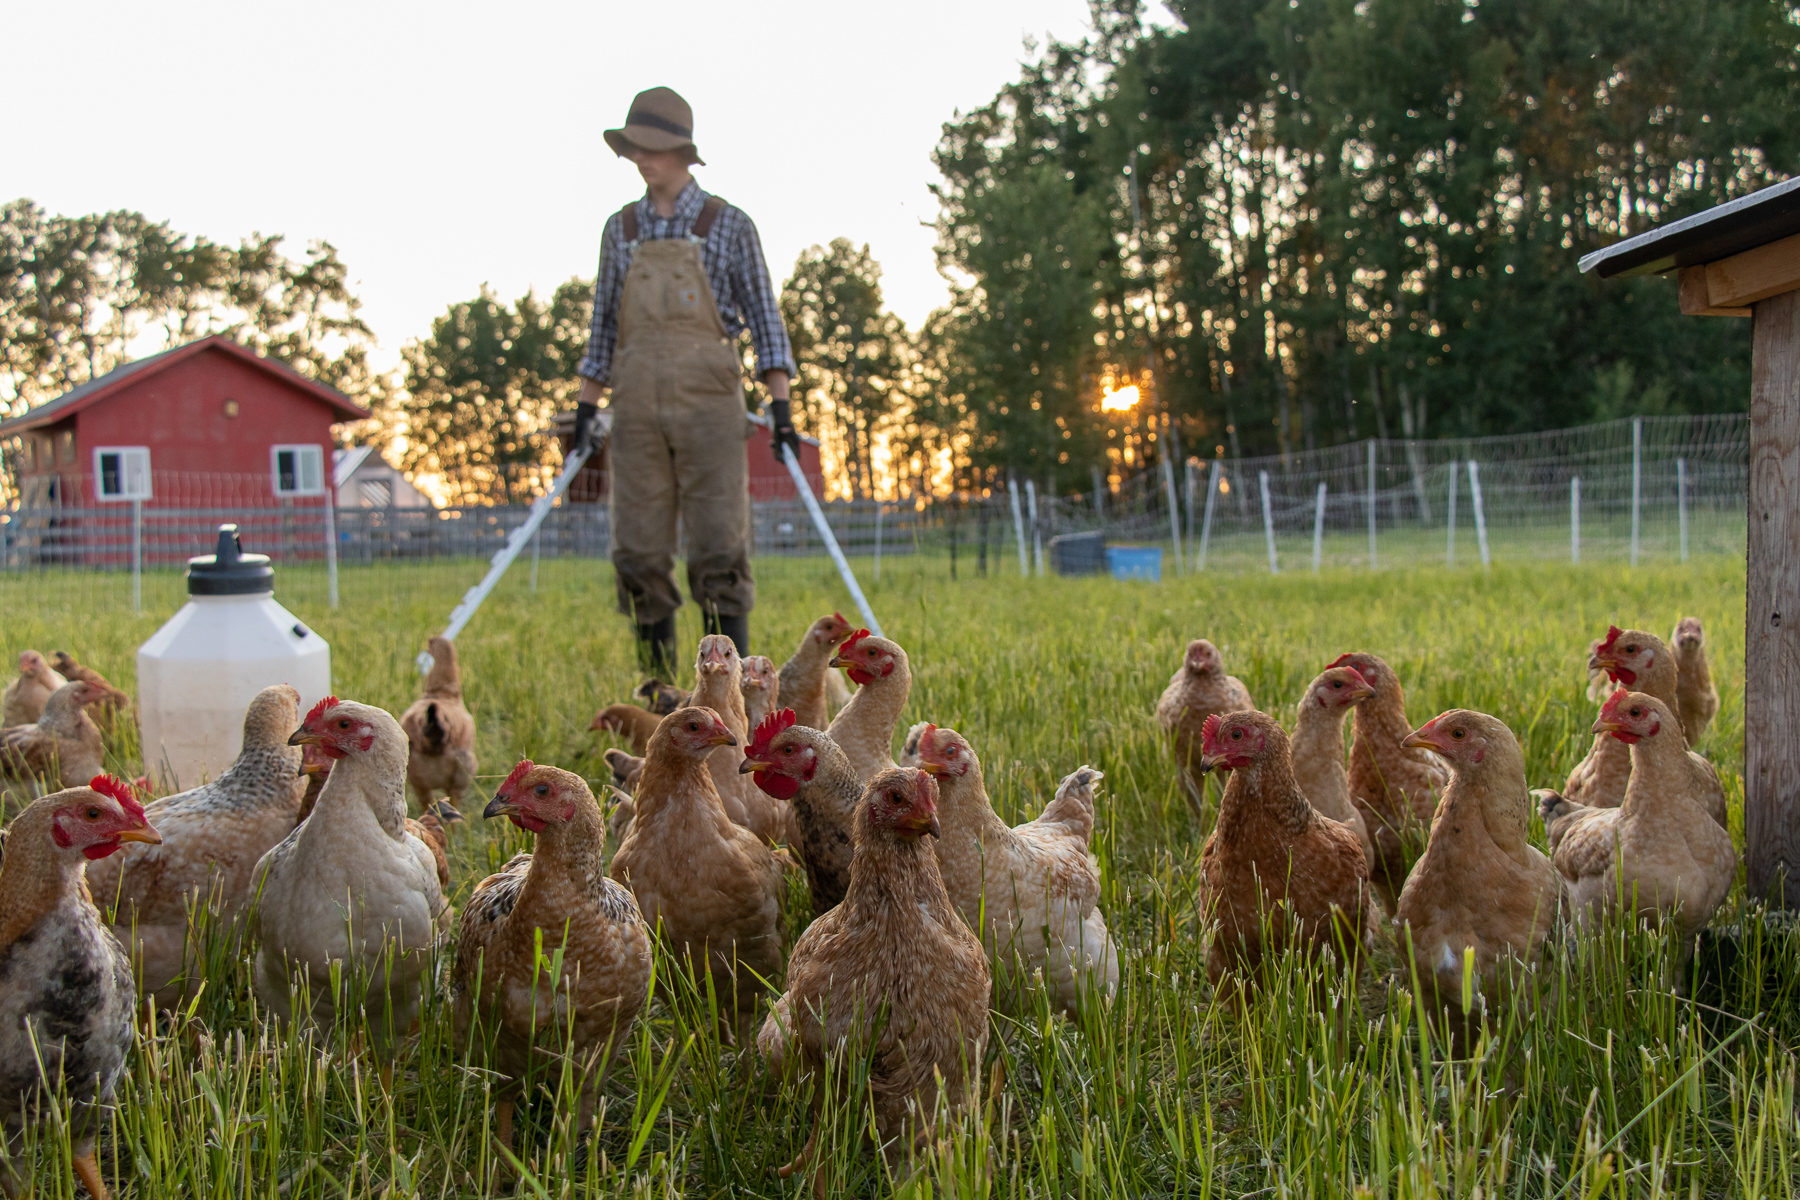 Bedtime: Gabriel locks up the chickens for the night.